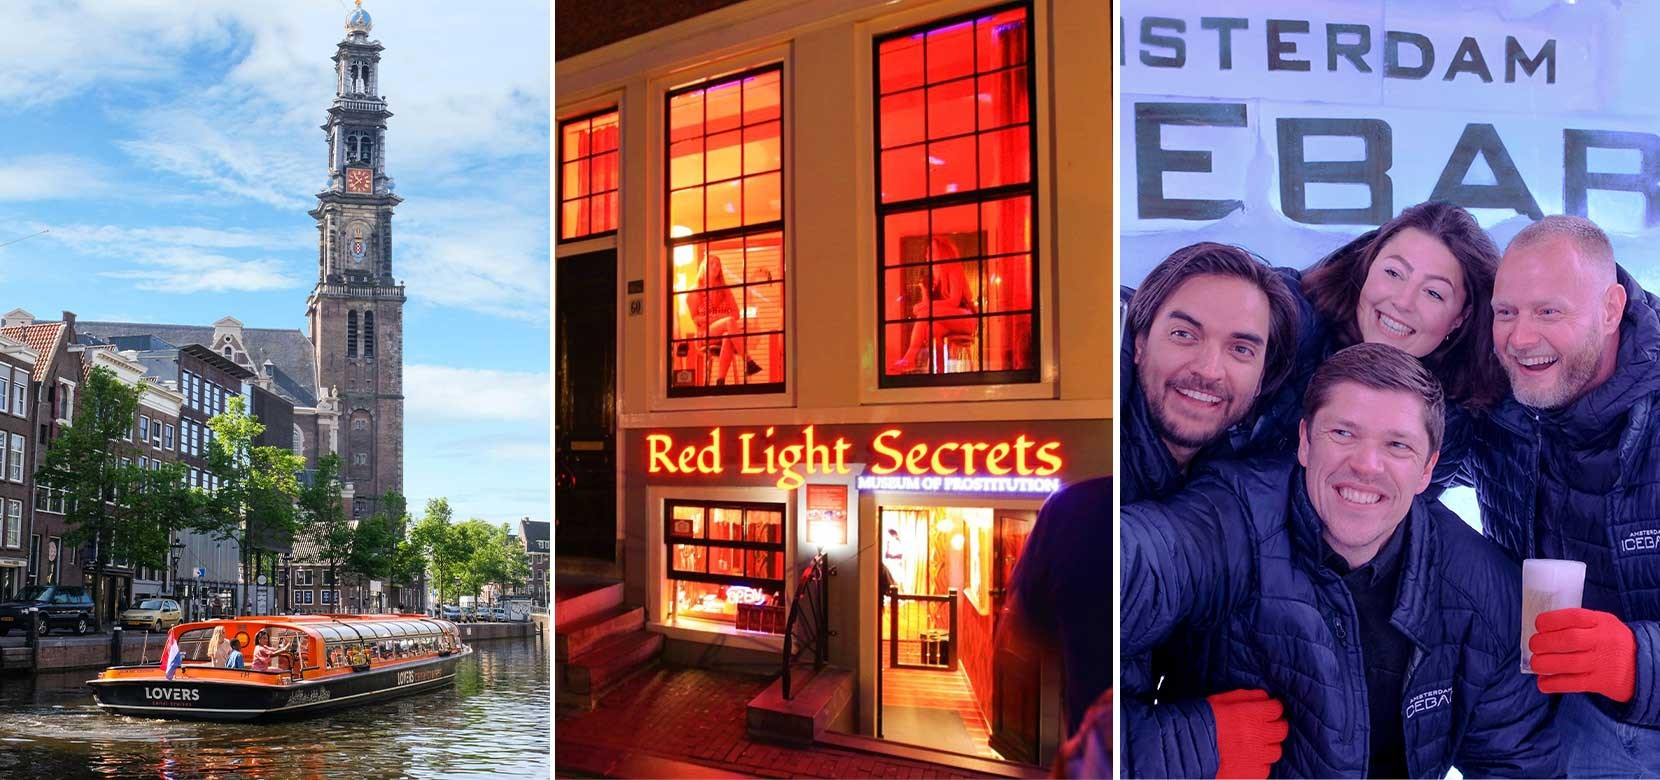 Red Light Secrets + XtraCold Icebar + 1 h. Amsterdam Canal Cruise